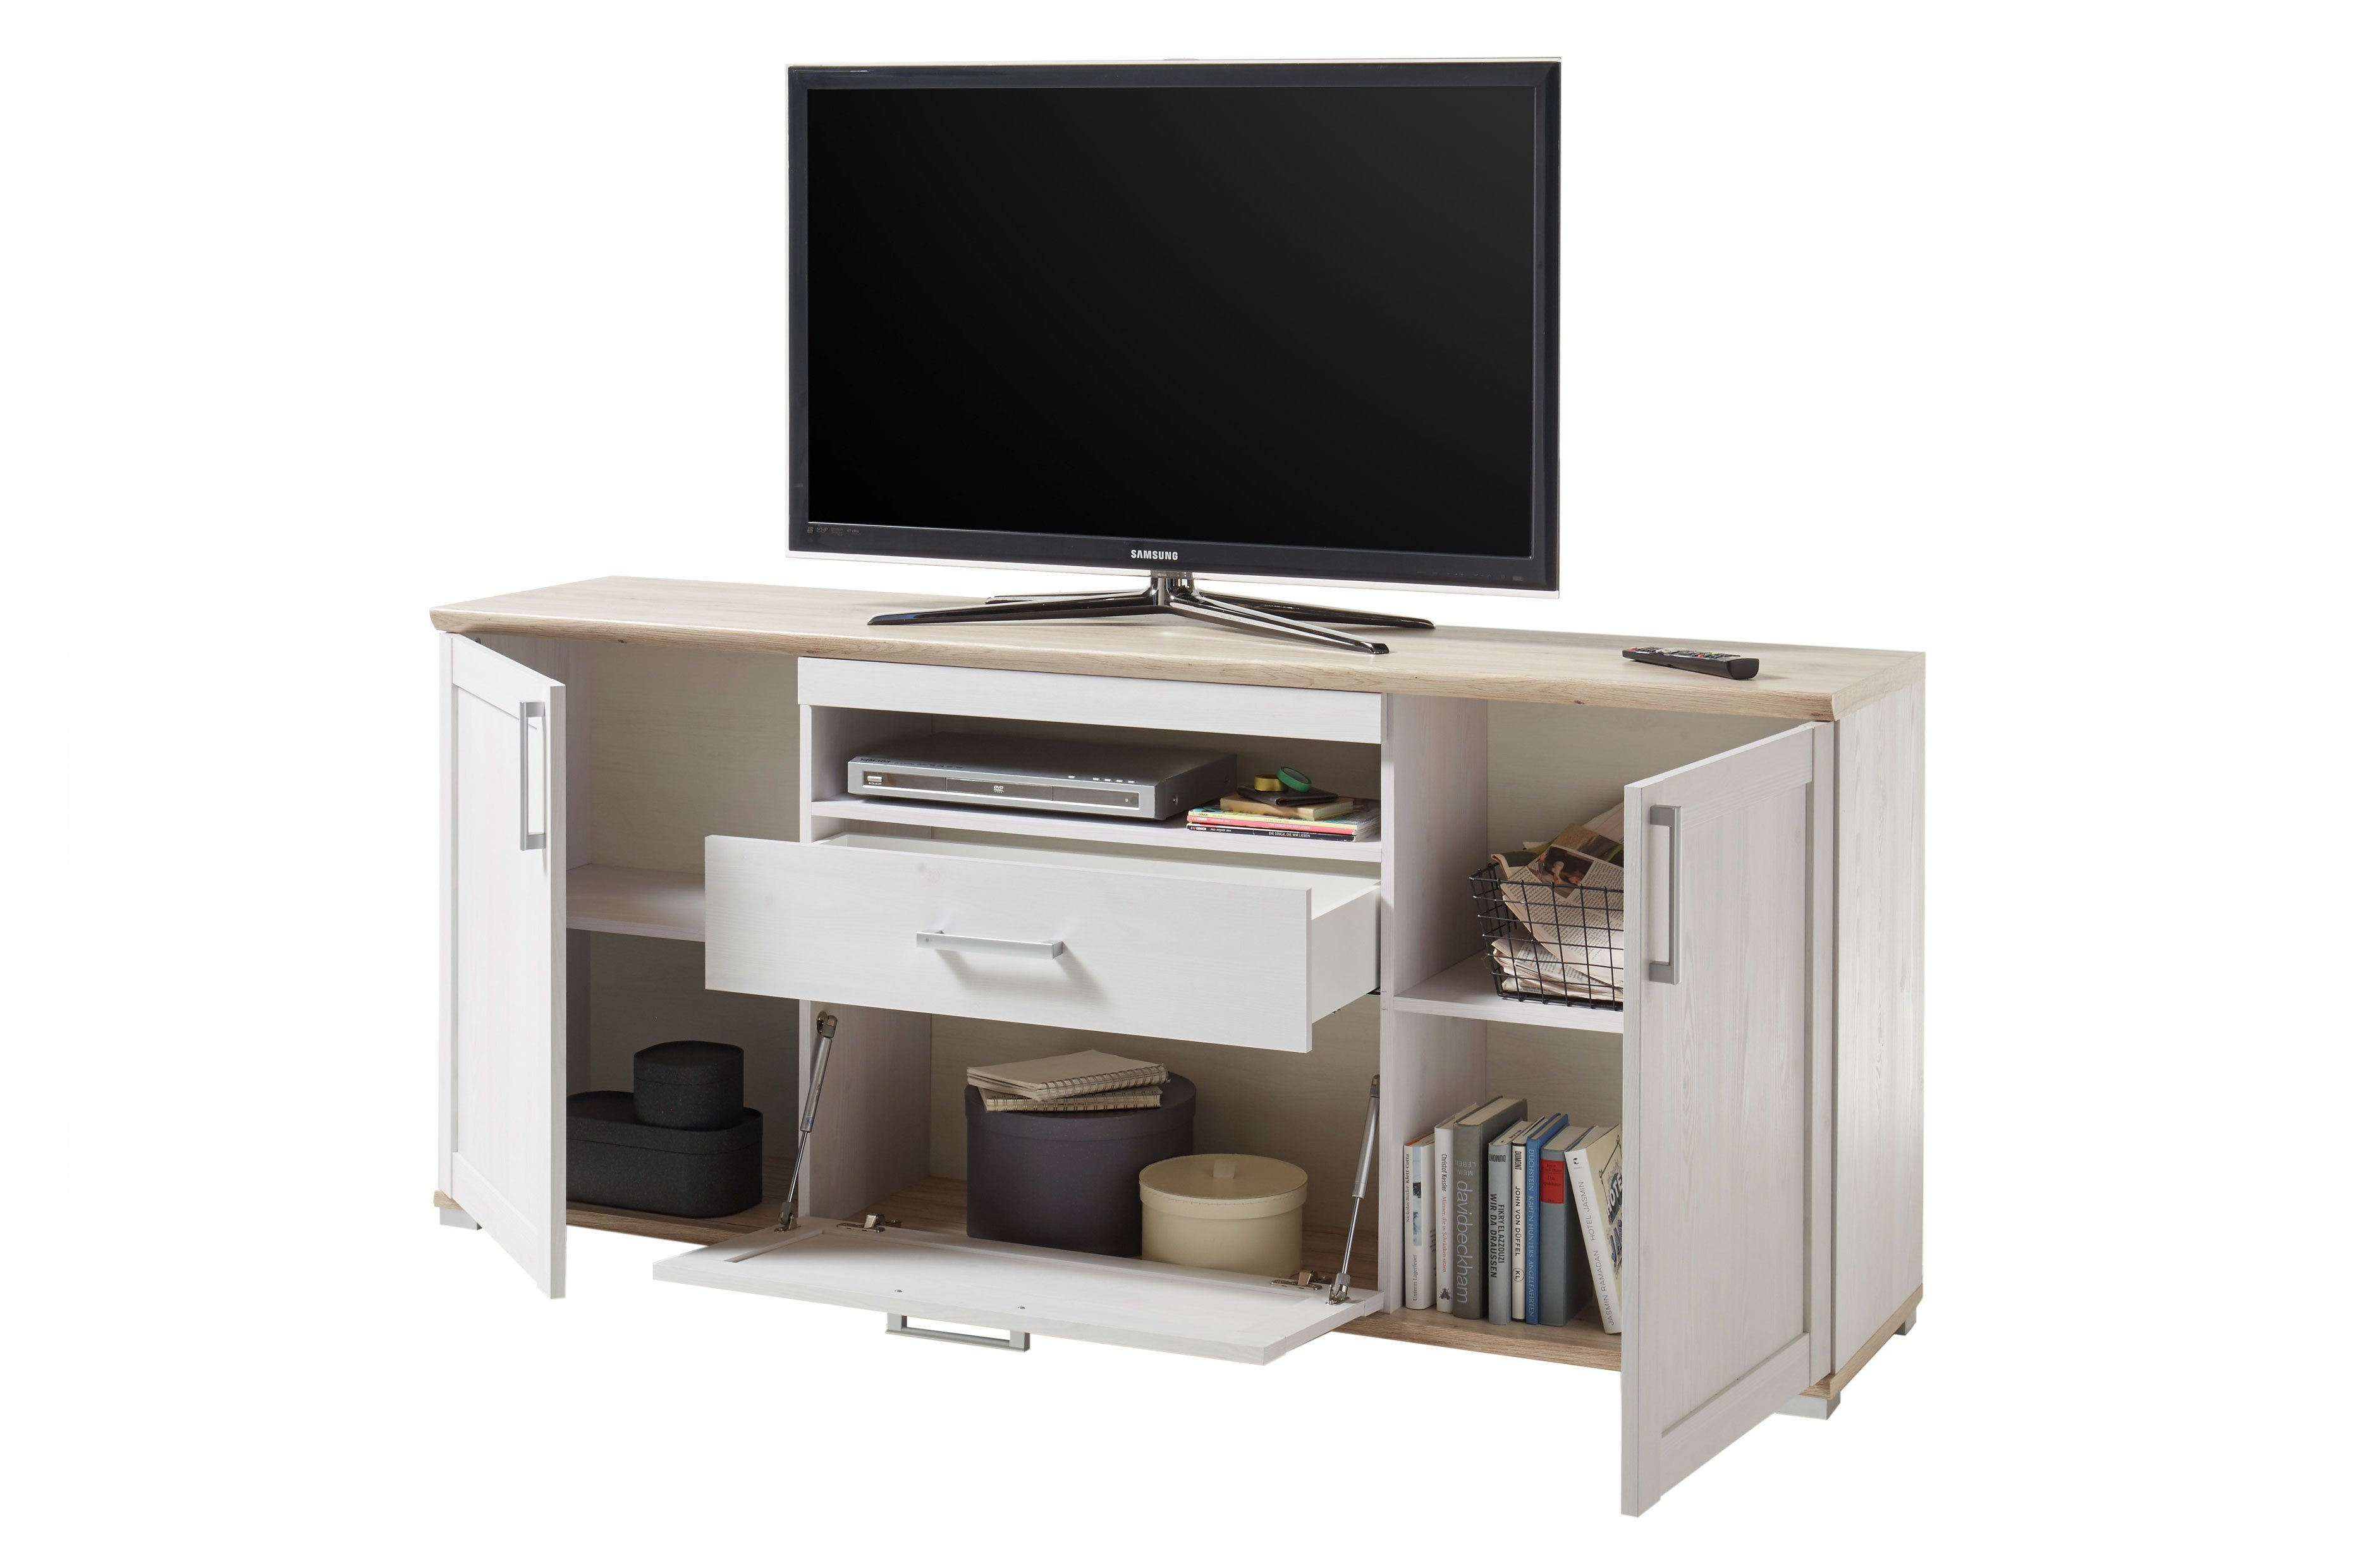 Hbz Meble Tv Sideboard Romance 44 028 D4 Sibiu Larche San Remo Hell